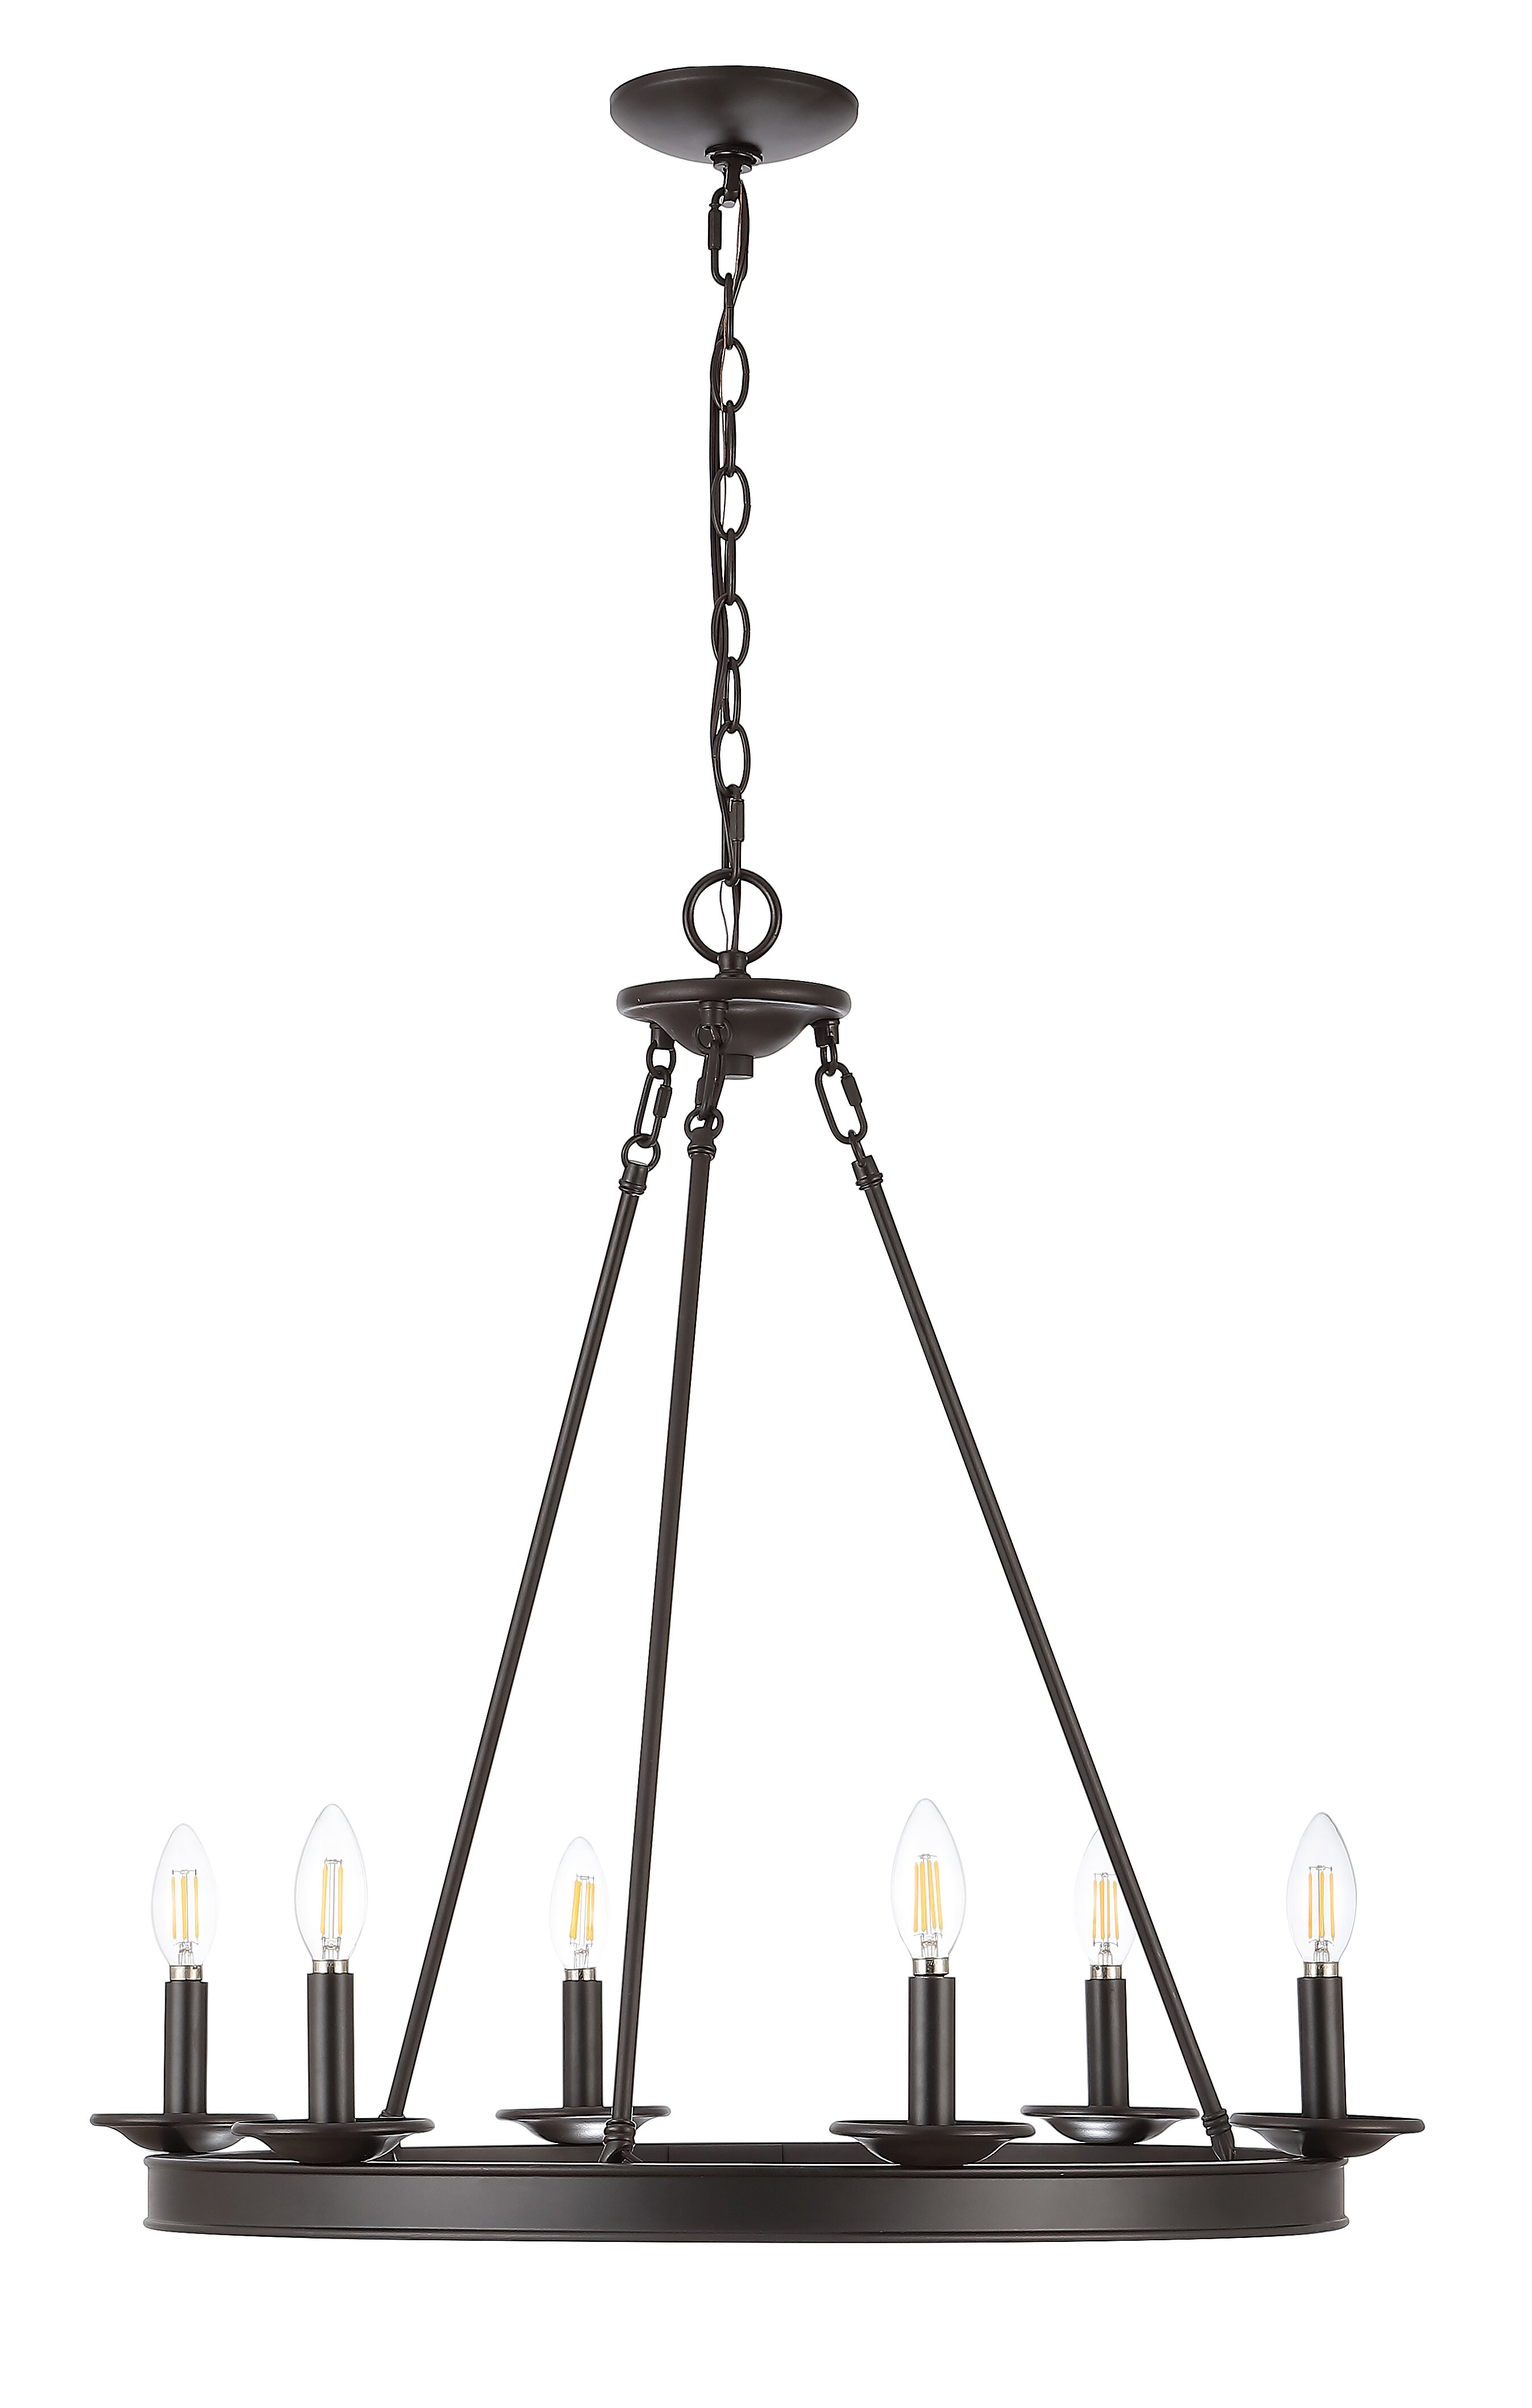 Ivy Bronx Narron 6 Light Candle Style Wagon Wheel Chandelier Reviews Wayfair